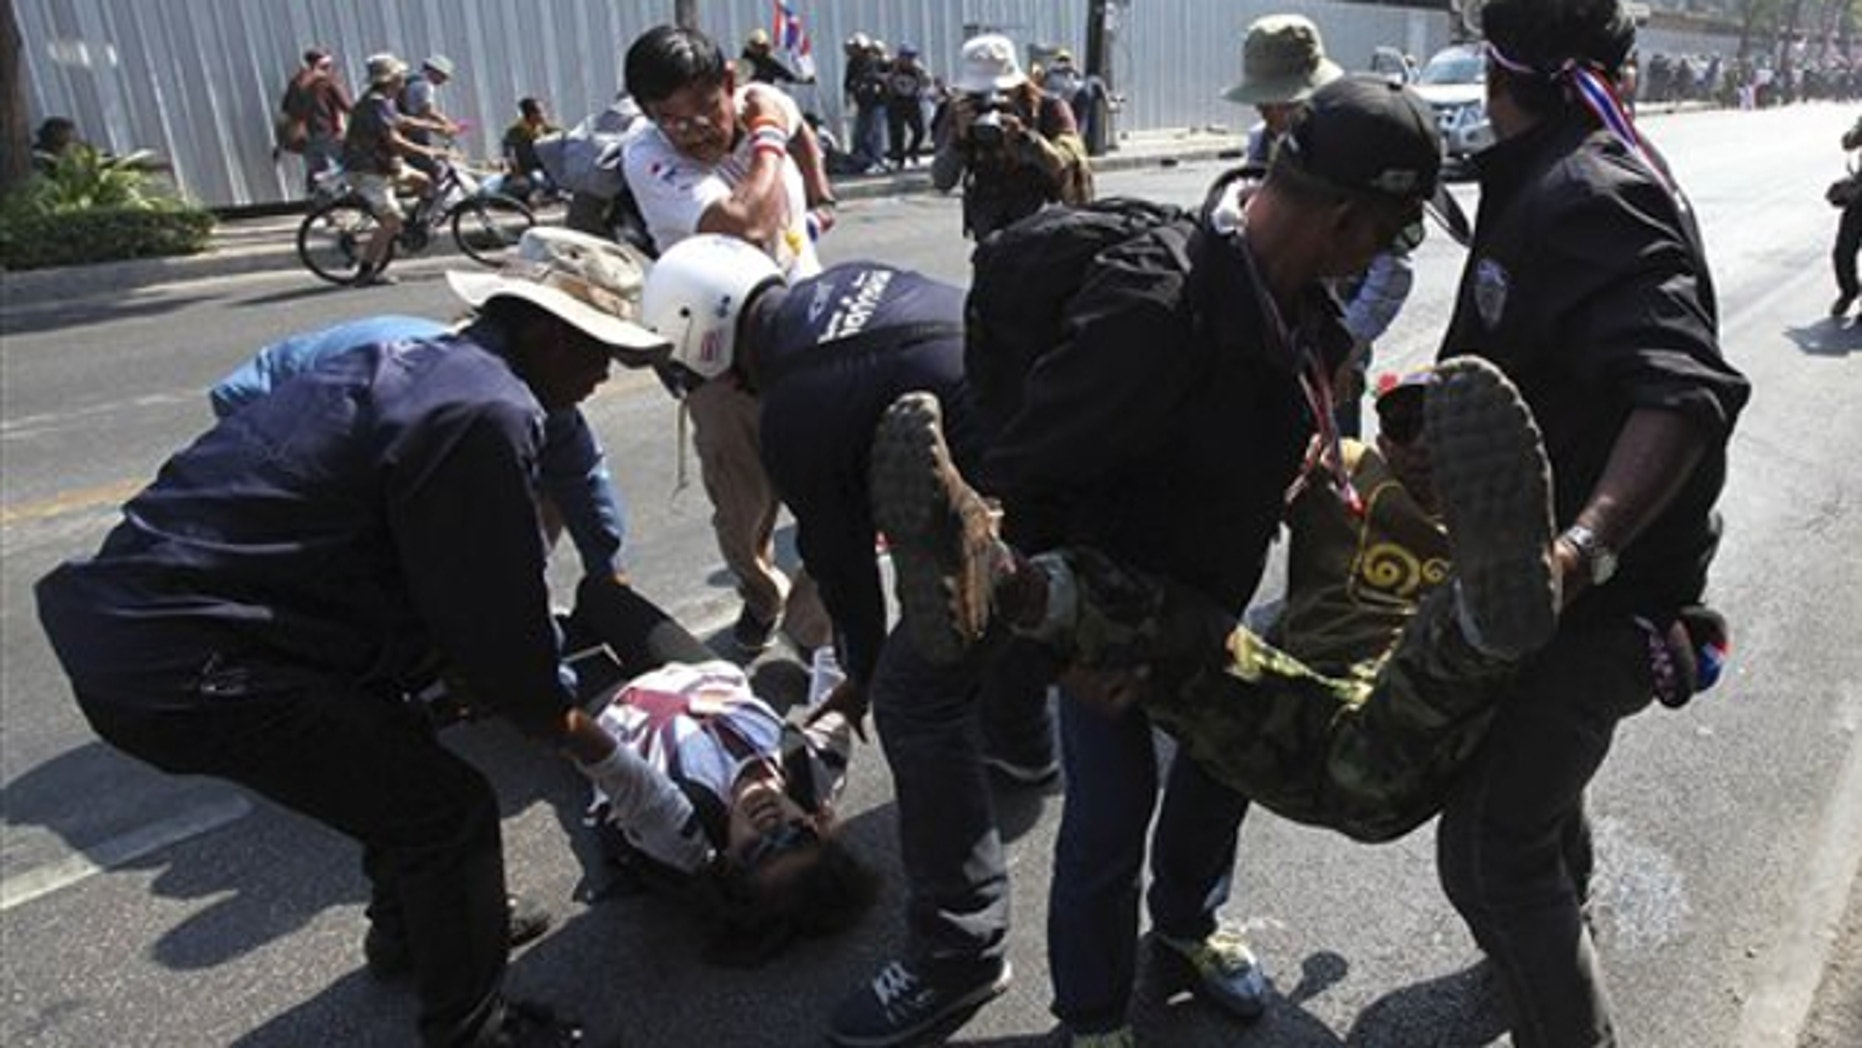 Jan. 17, 2014: Injured anti-government protesters are taken out from a street by other protesters during a demonstration in Bangkok, Thailand.